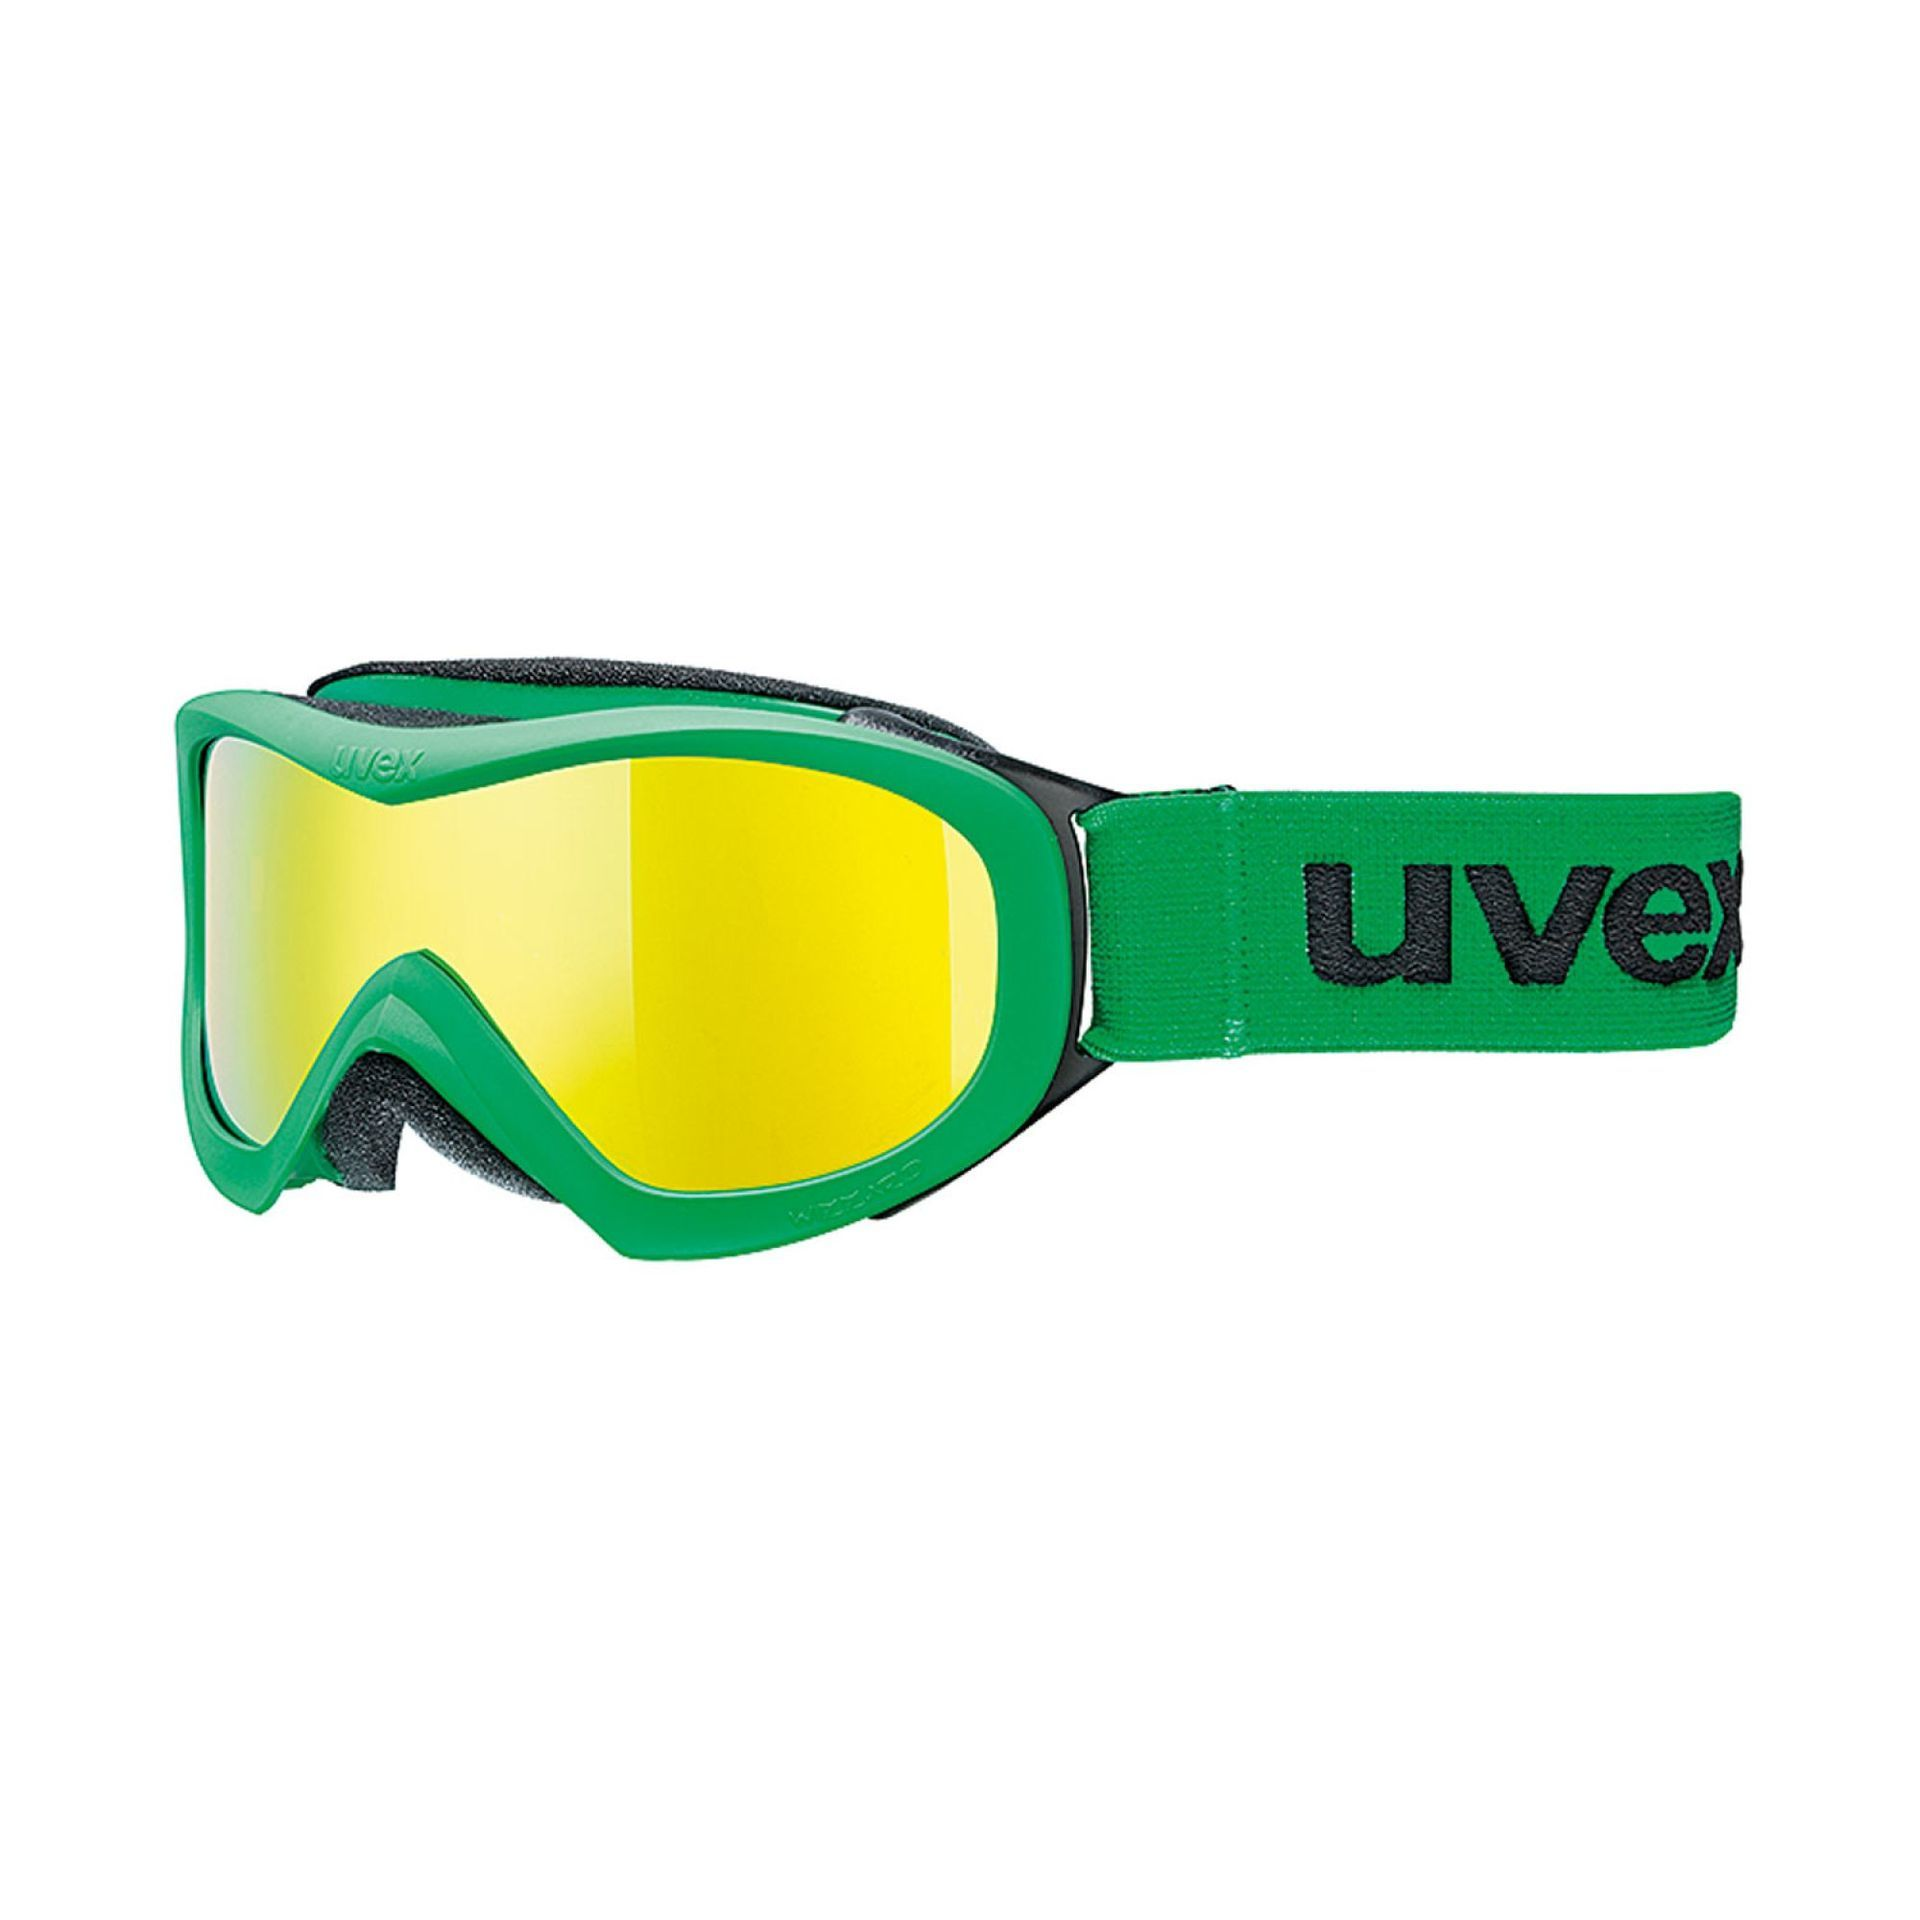 GOGLE UVEX WIZZARD DL MIRROR GREEN